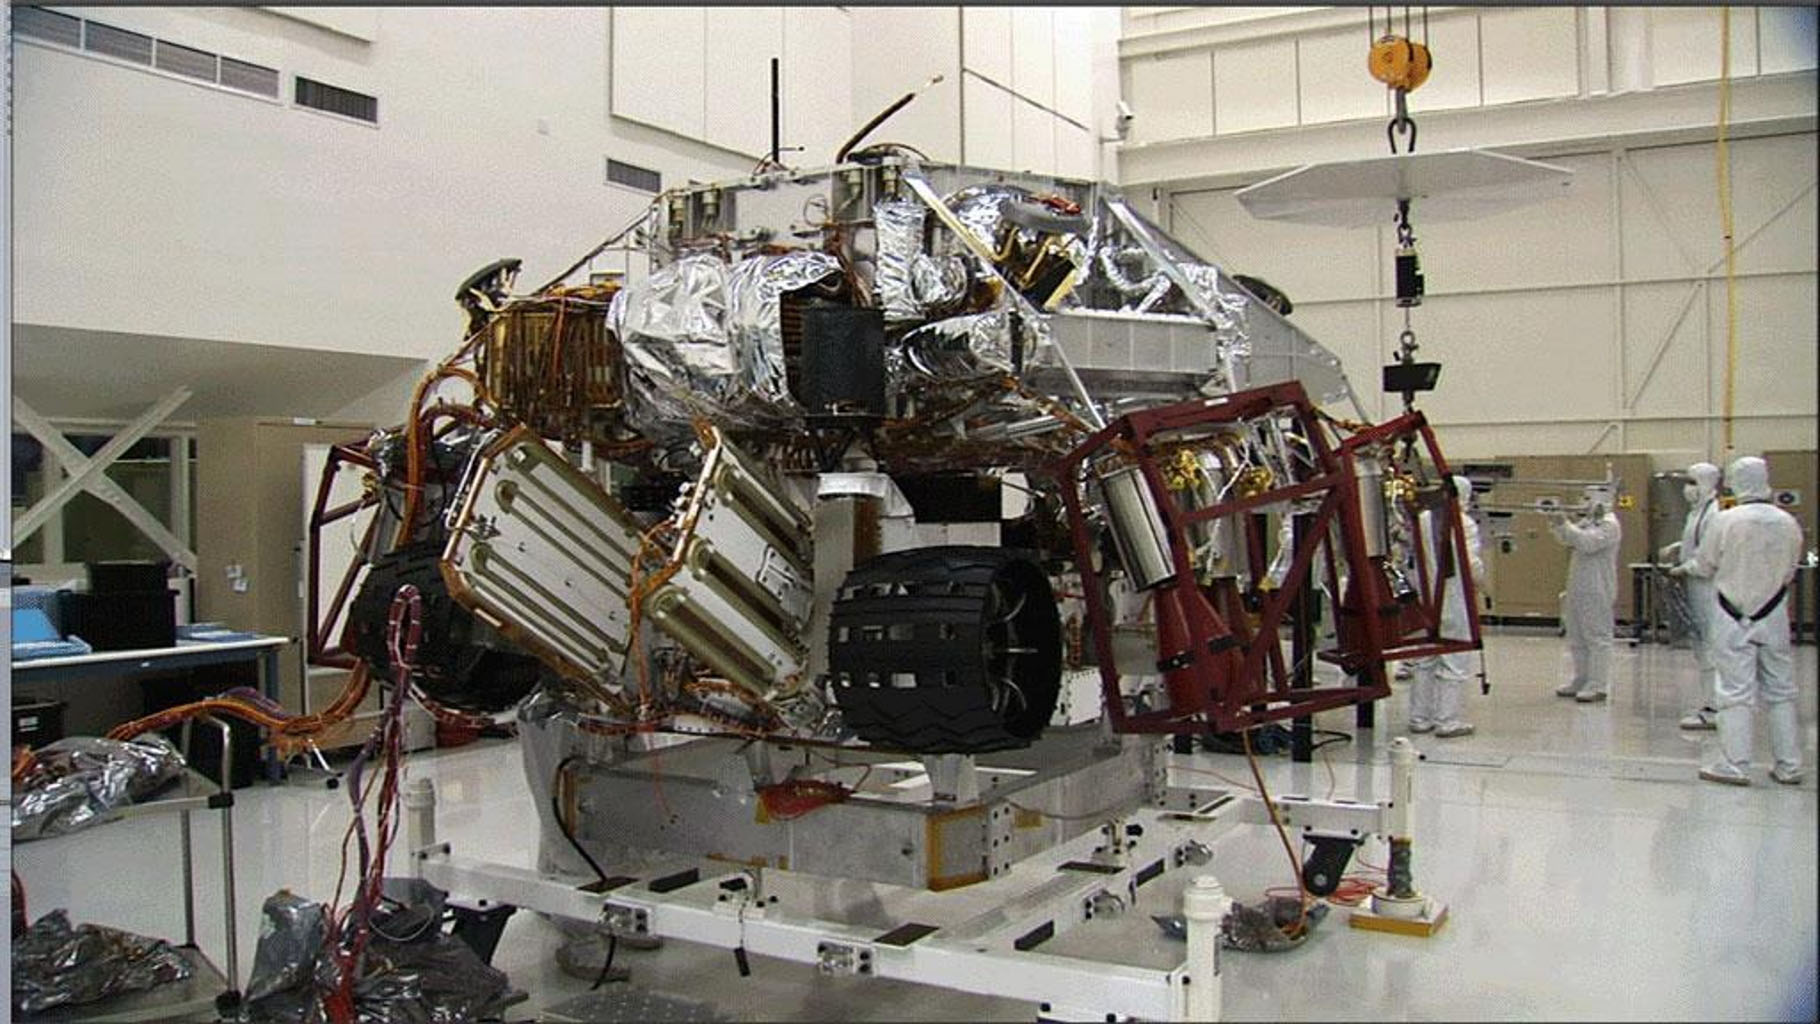 These three images show the progression of 'stacking' NASA's Mars Science Laboratory rover and its descent stage in one of NASA's Jet Propulsion Laboratory's 'clean room.'